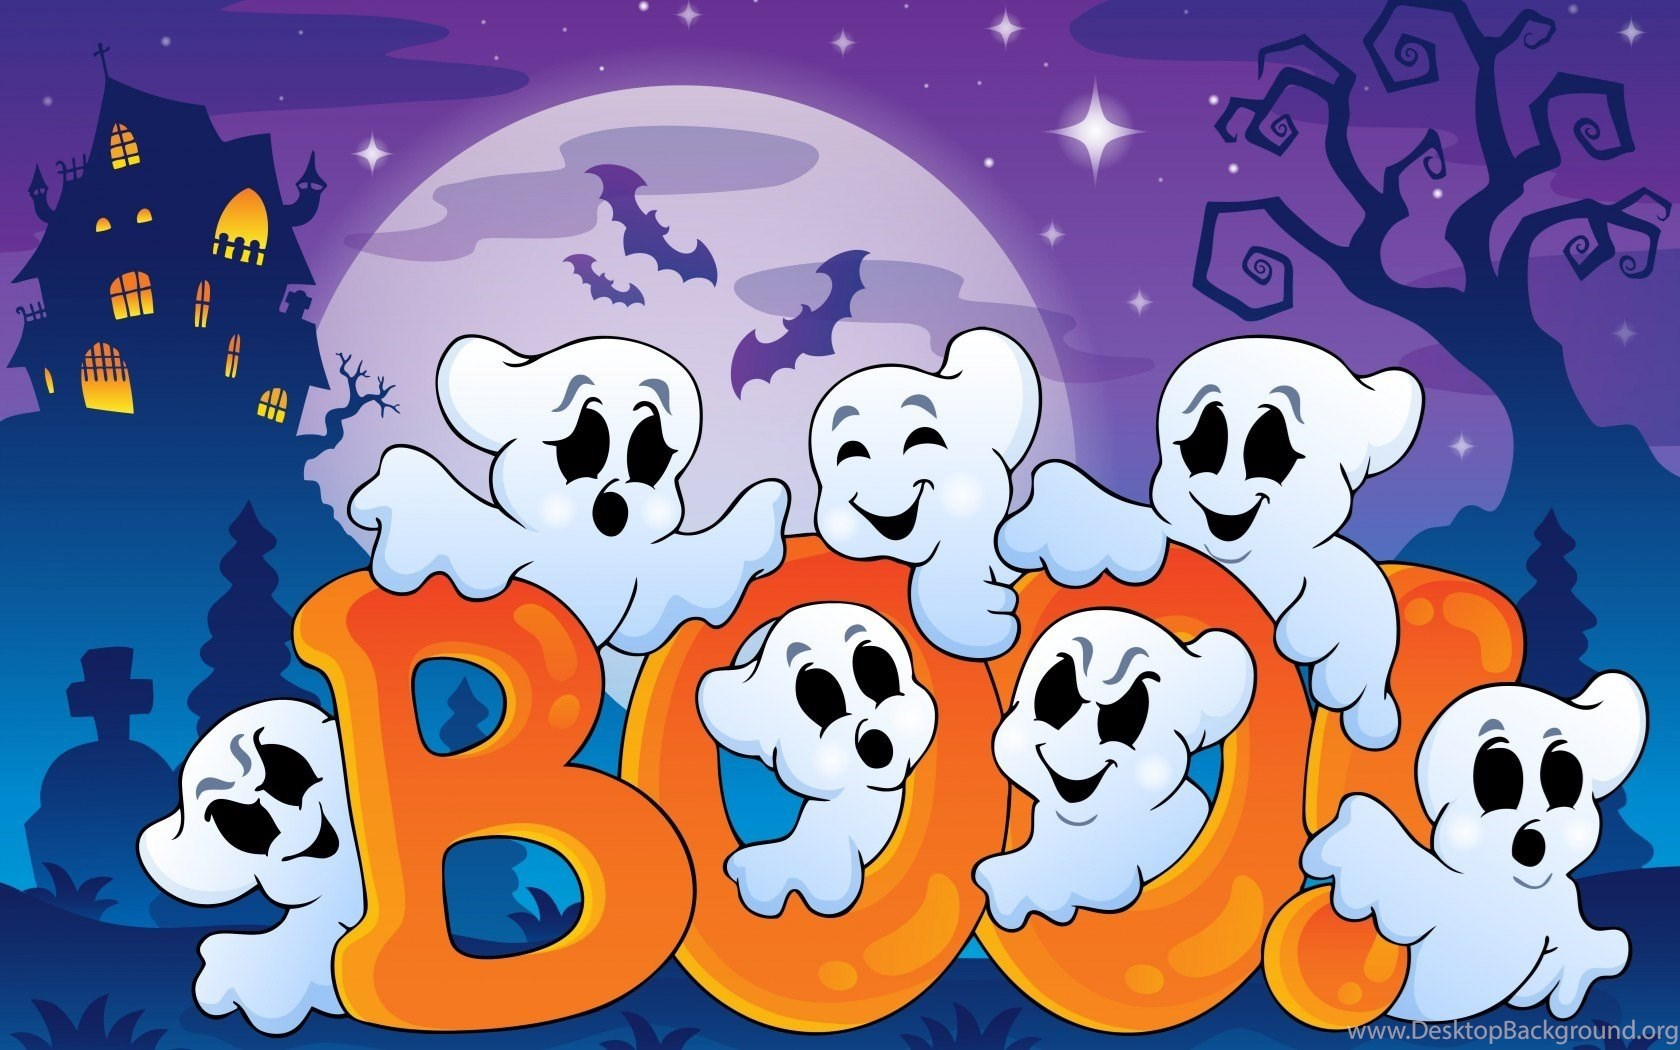 Cute Ghost Wallpapers Also Cute Halloween Ghost Tumblr Together Desktop Background